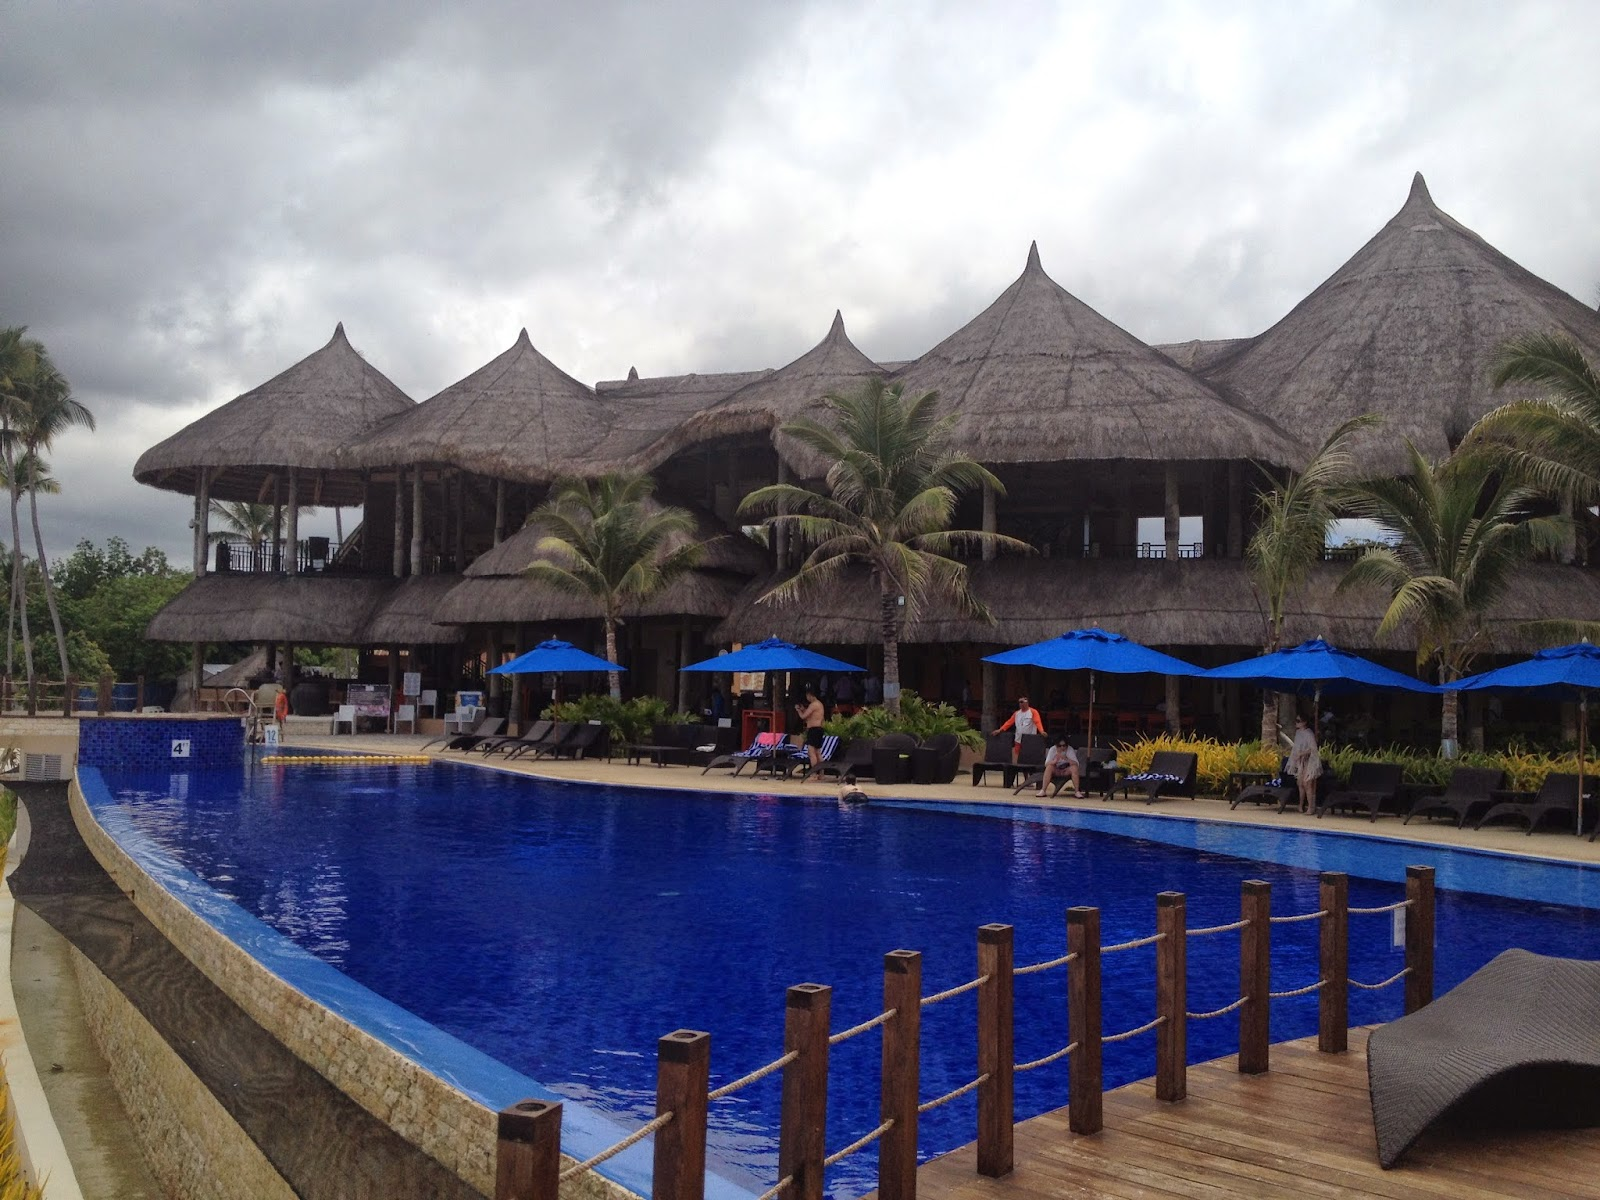 swimming pool at Bellevue Resort and Hotel in Panglao, Bohol, Philippines.